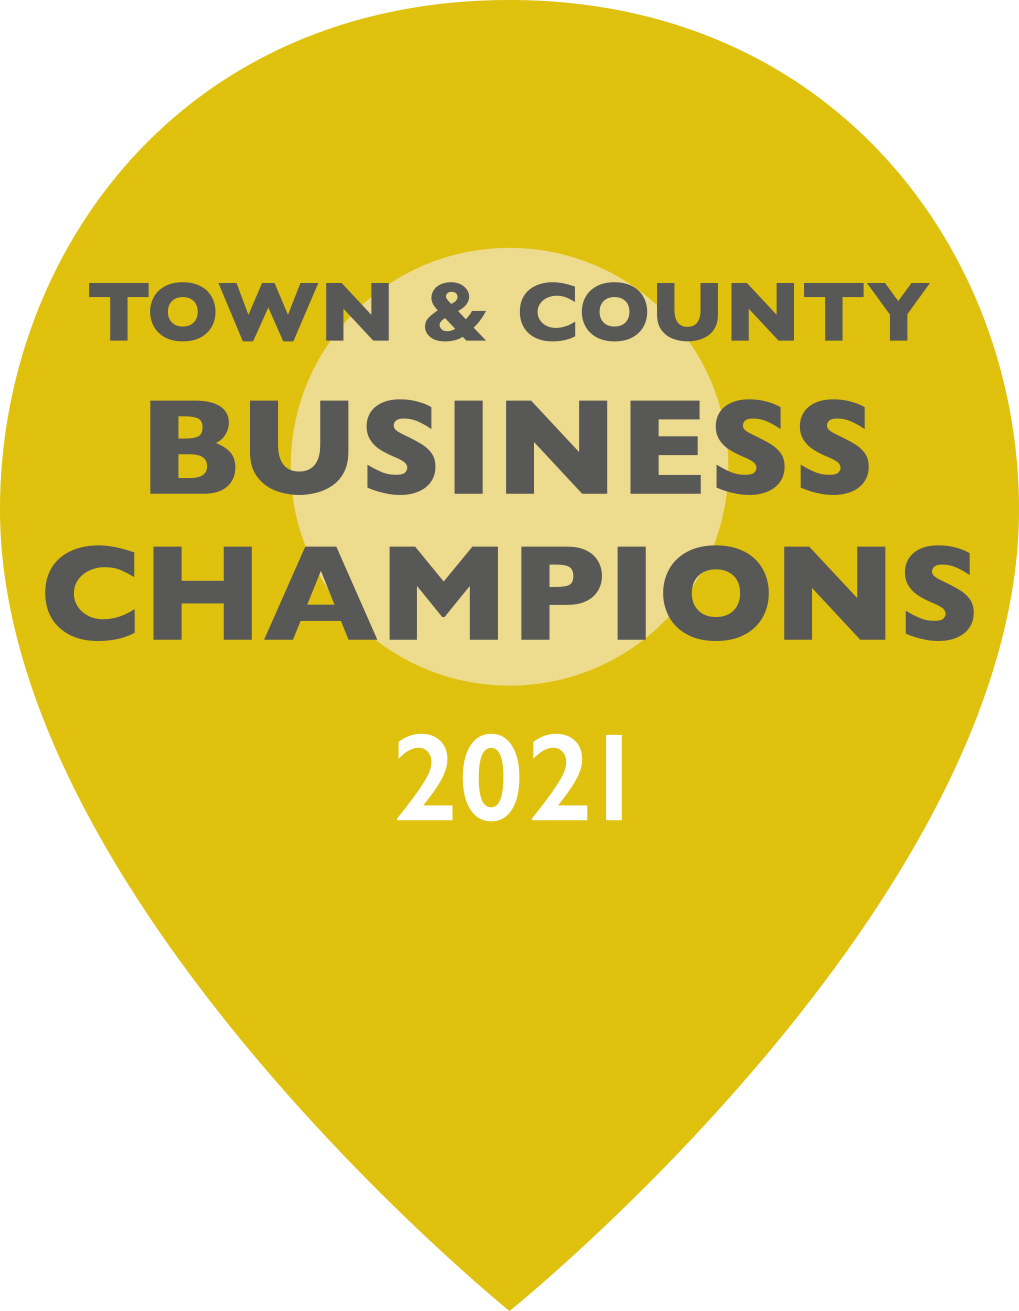 Town & County Business Champions